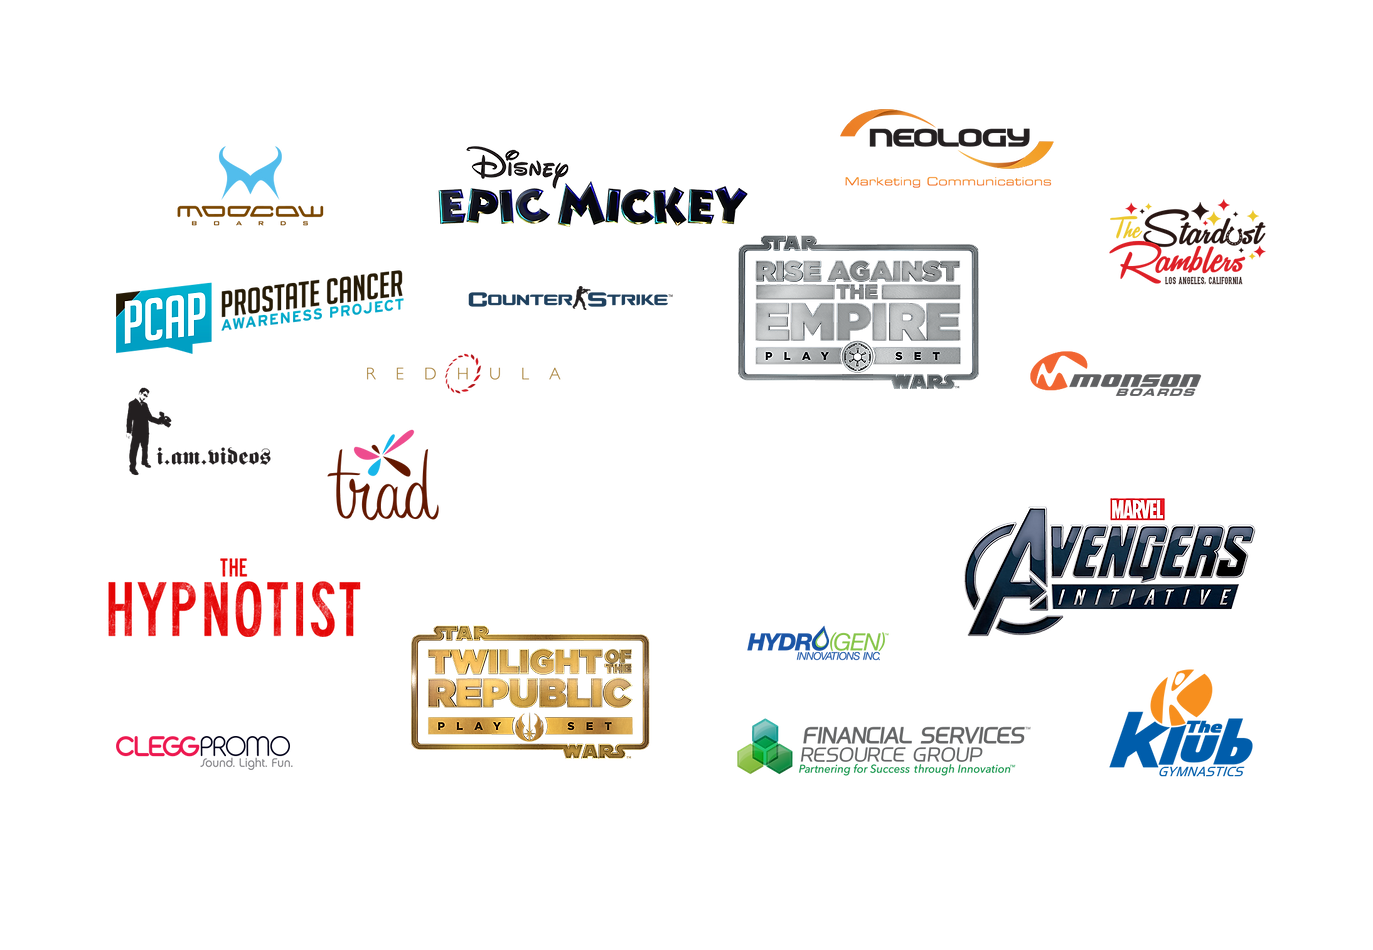 Branding and Logos for Disney Epic Mickey, Star Wars, Avengers, Counter-Strike and many others.